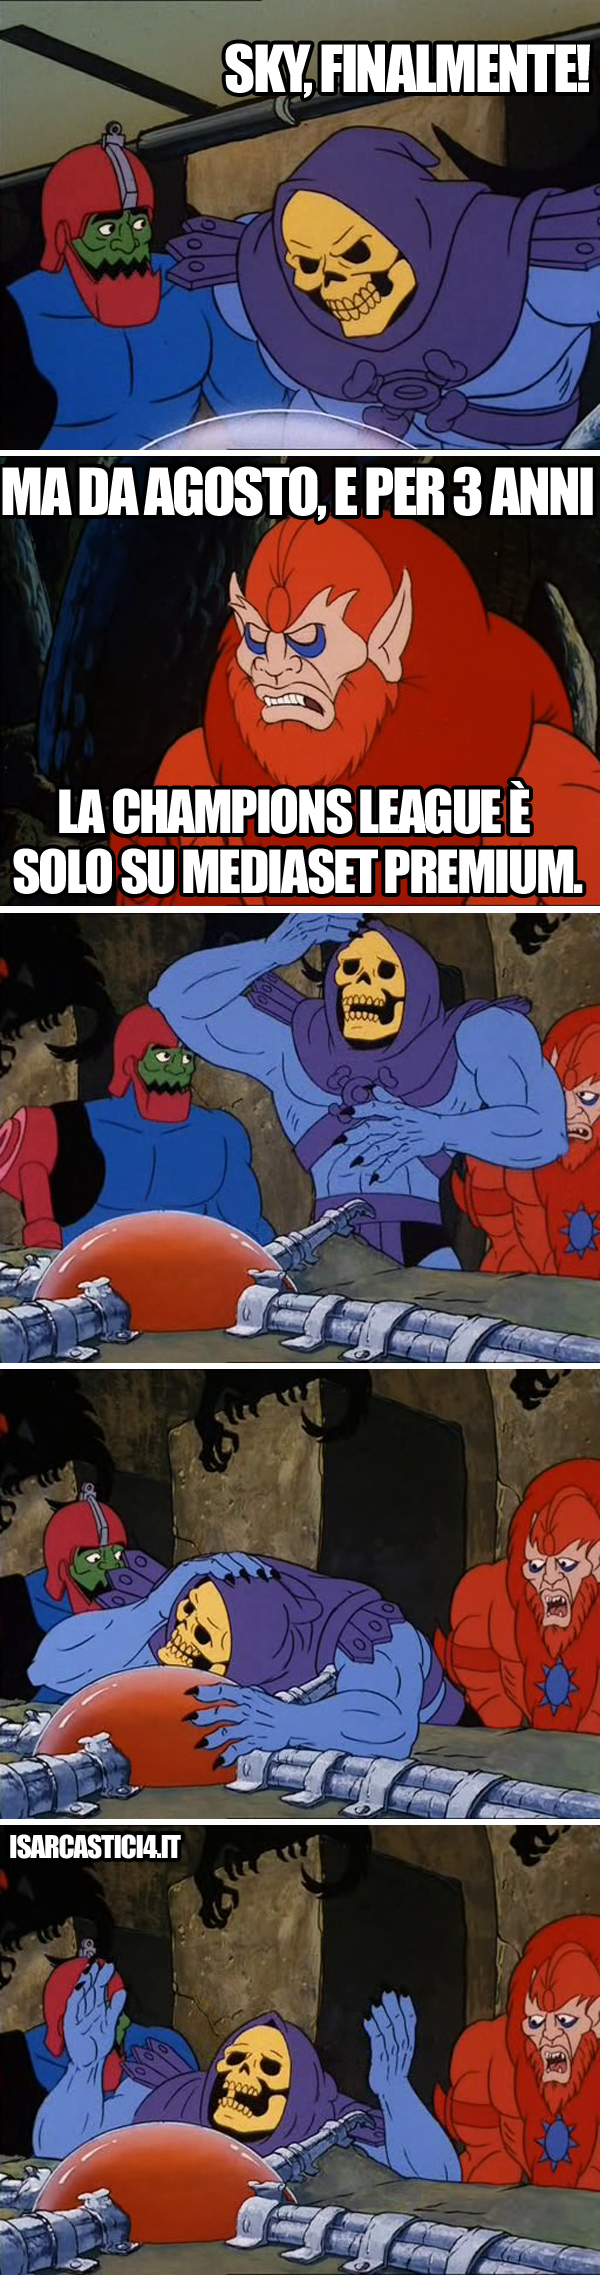 MOTU, Masters Of The Universe meme ita - Non va!